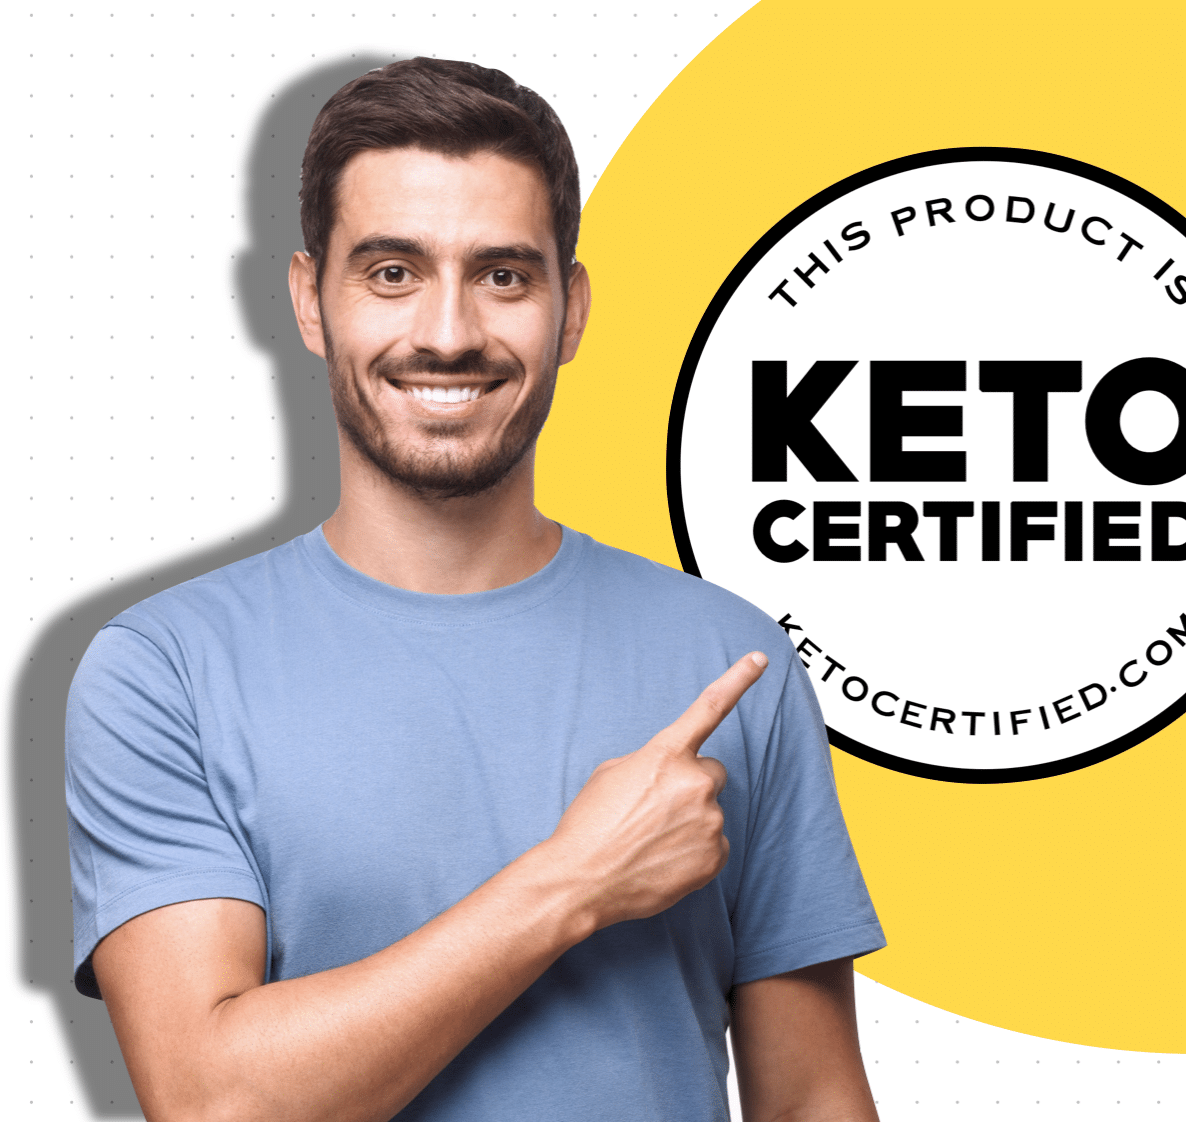 Keto Certified Application for keto diet product certification